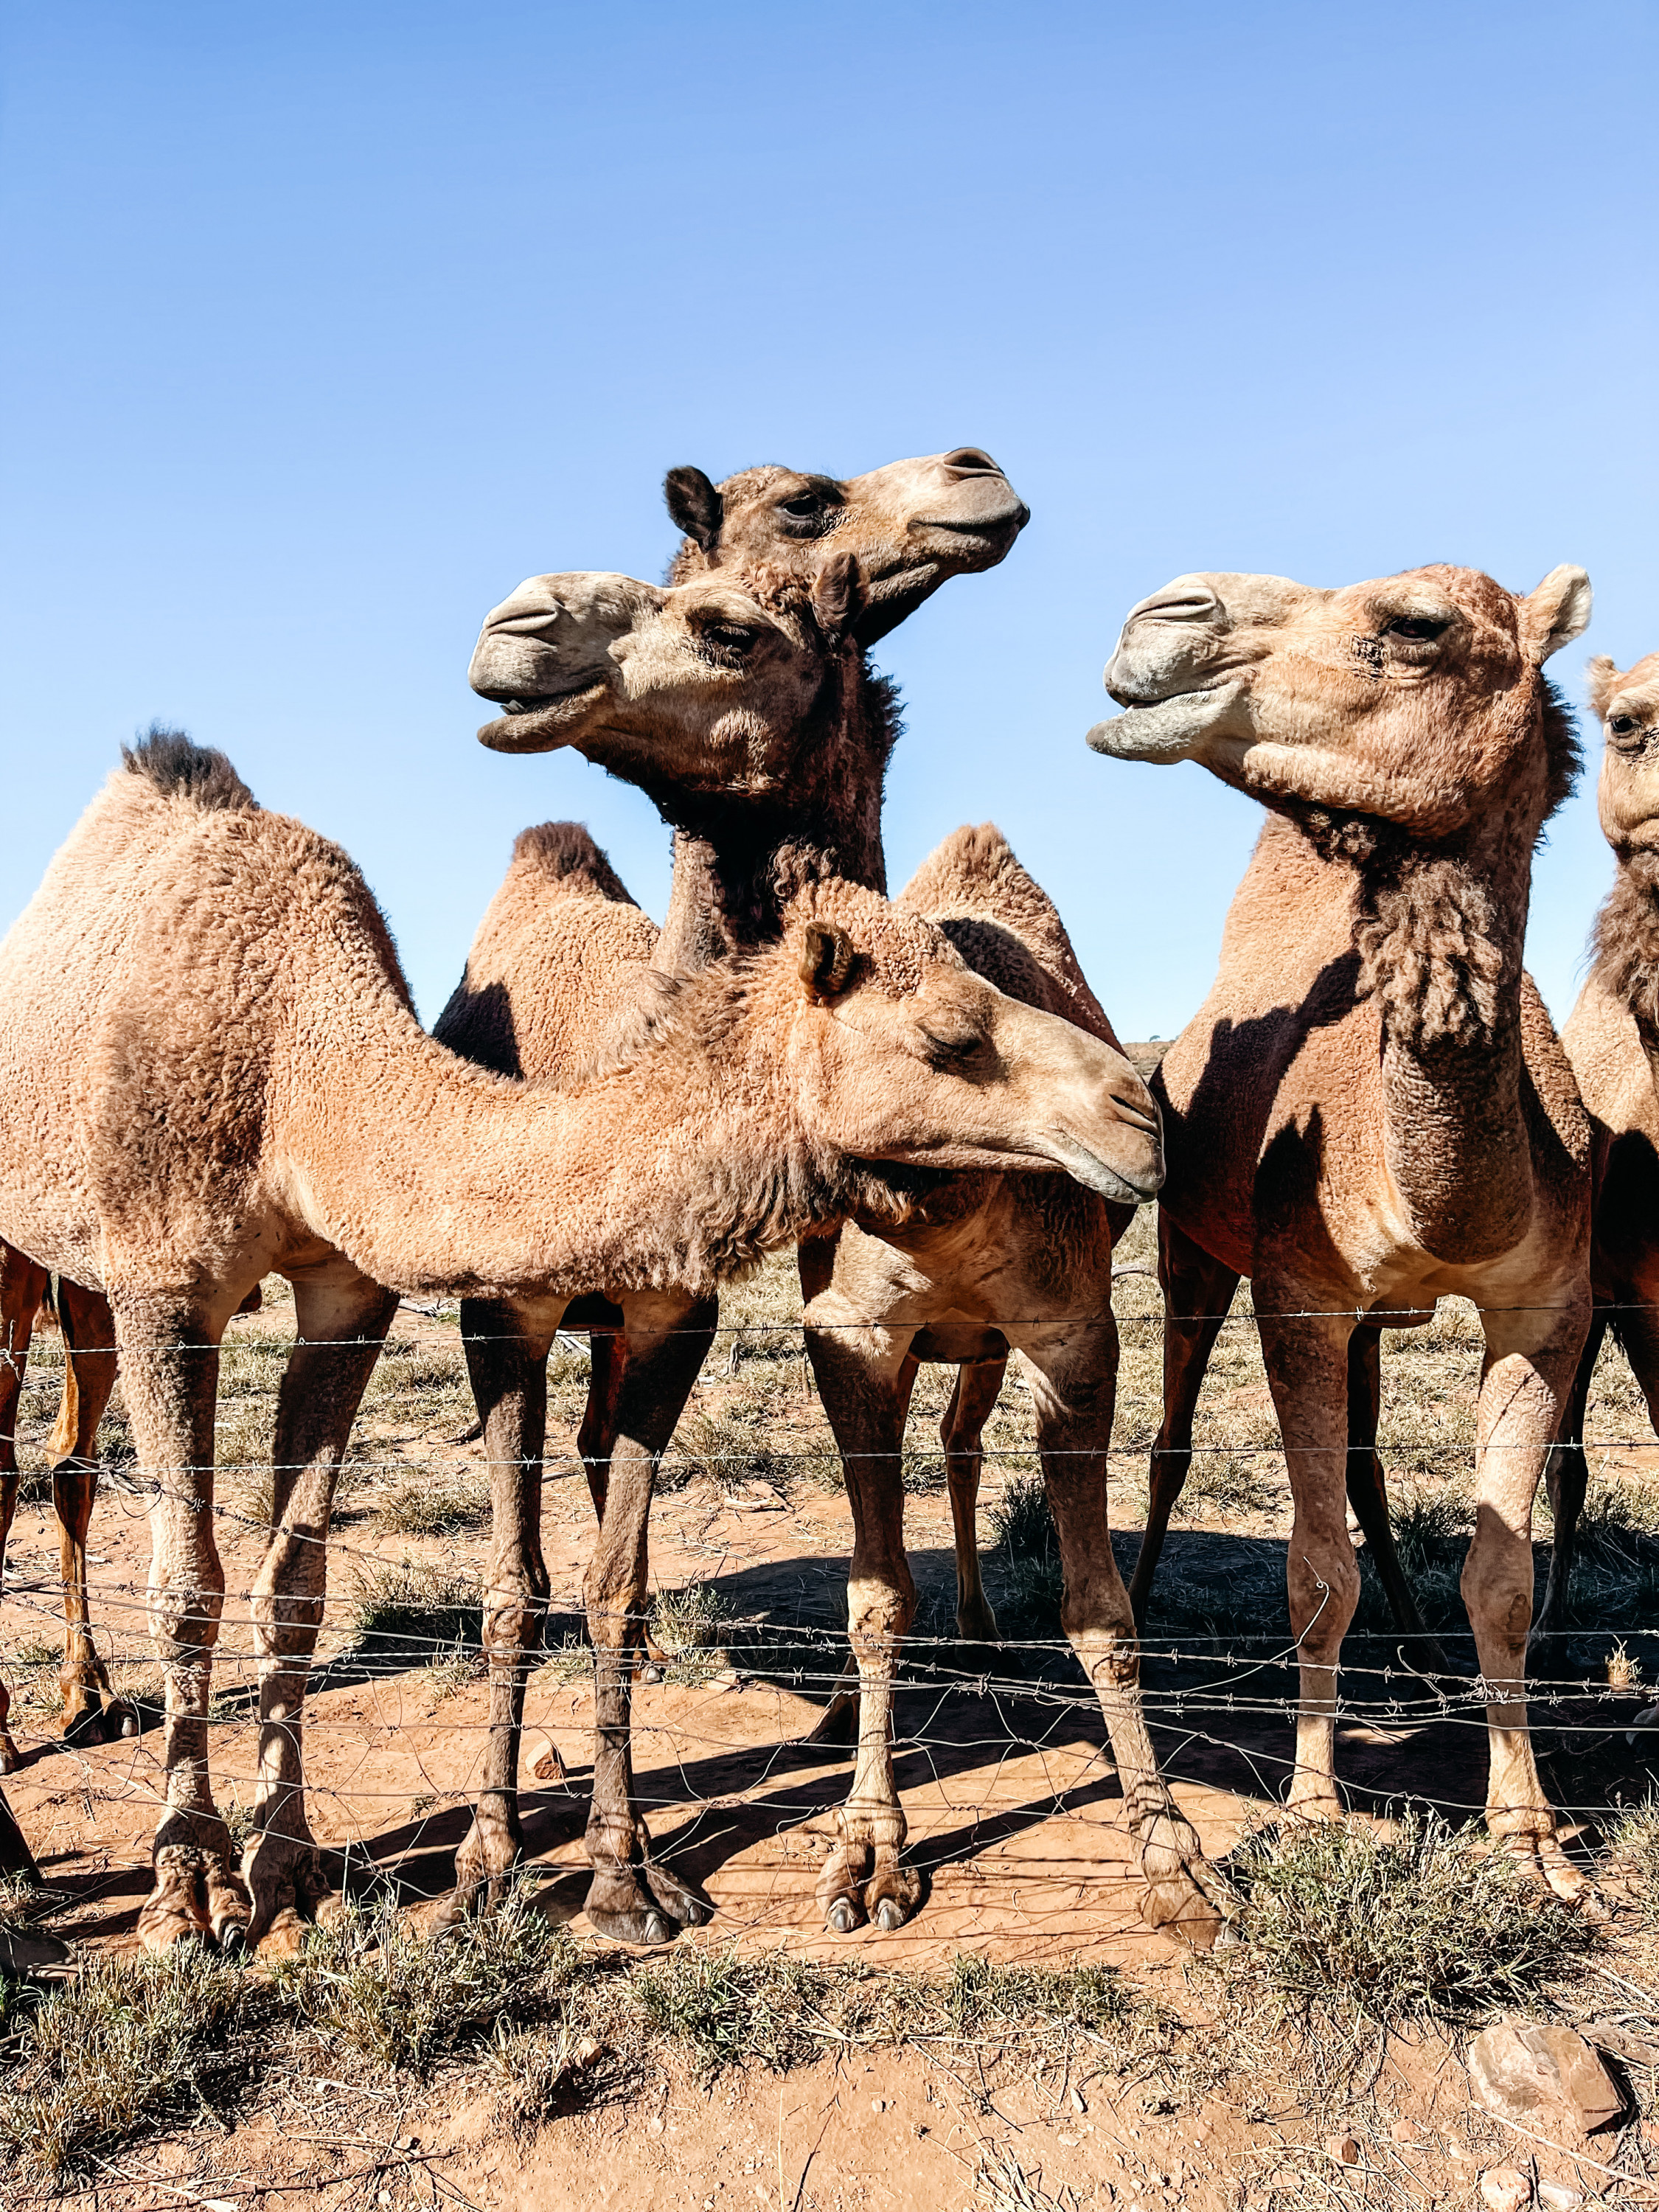 a row of camels at a fence